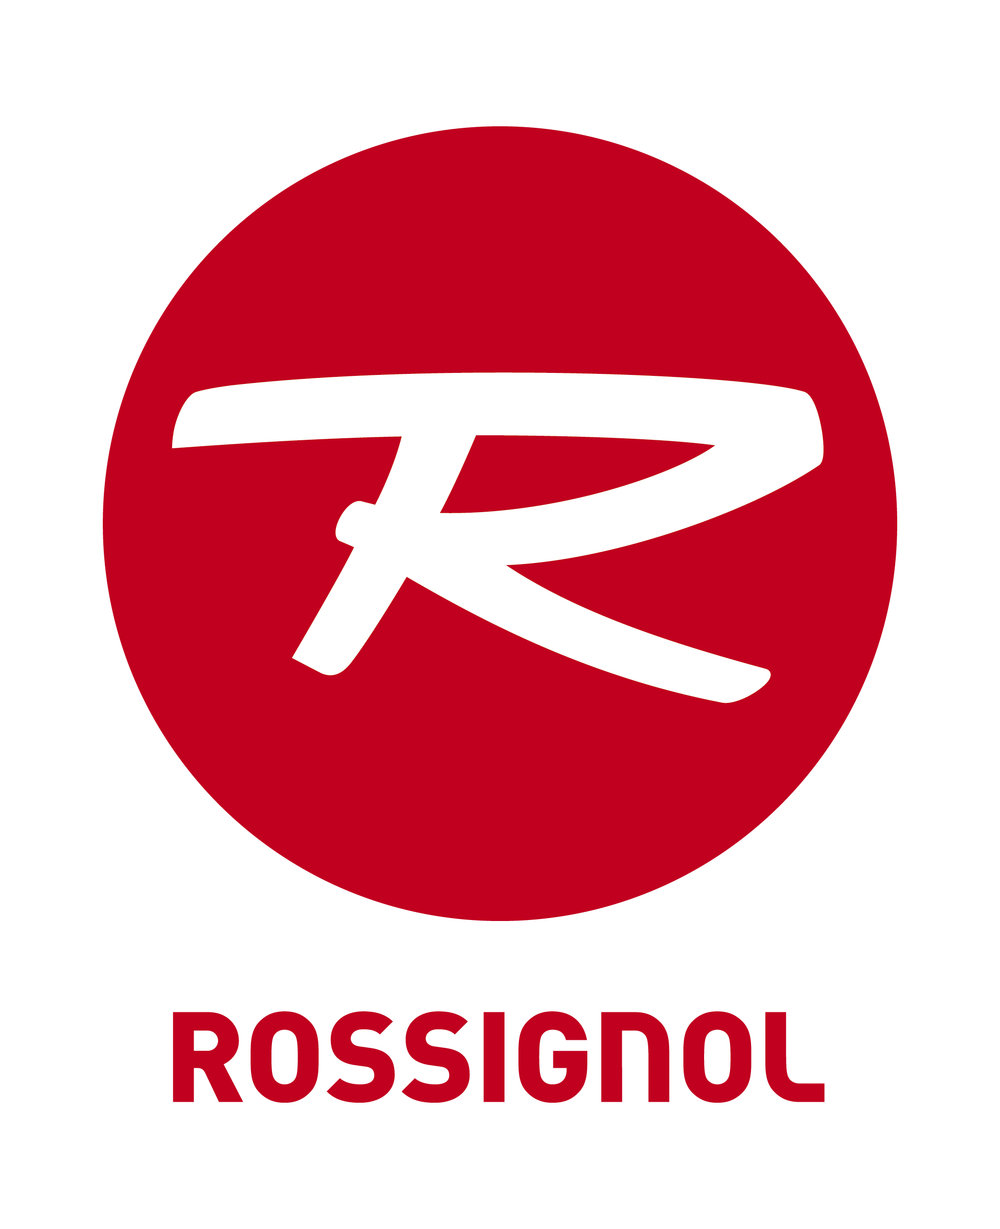 R+Rossignol_SQUARE_RED.jpg